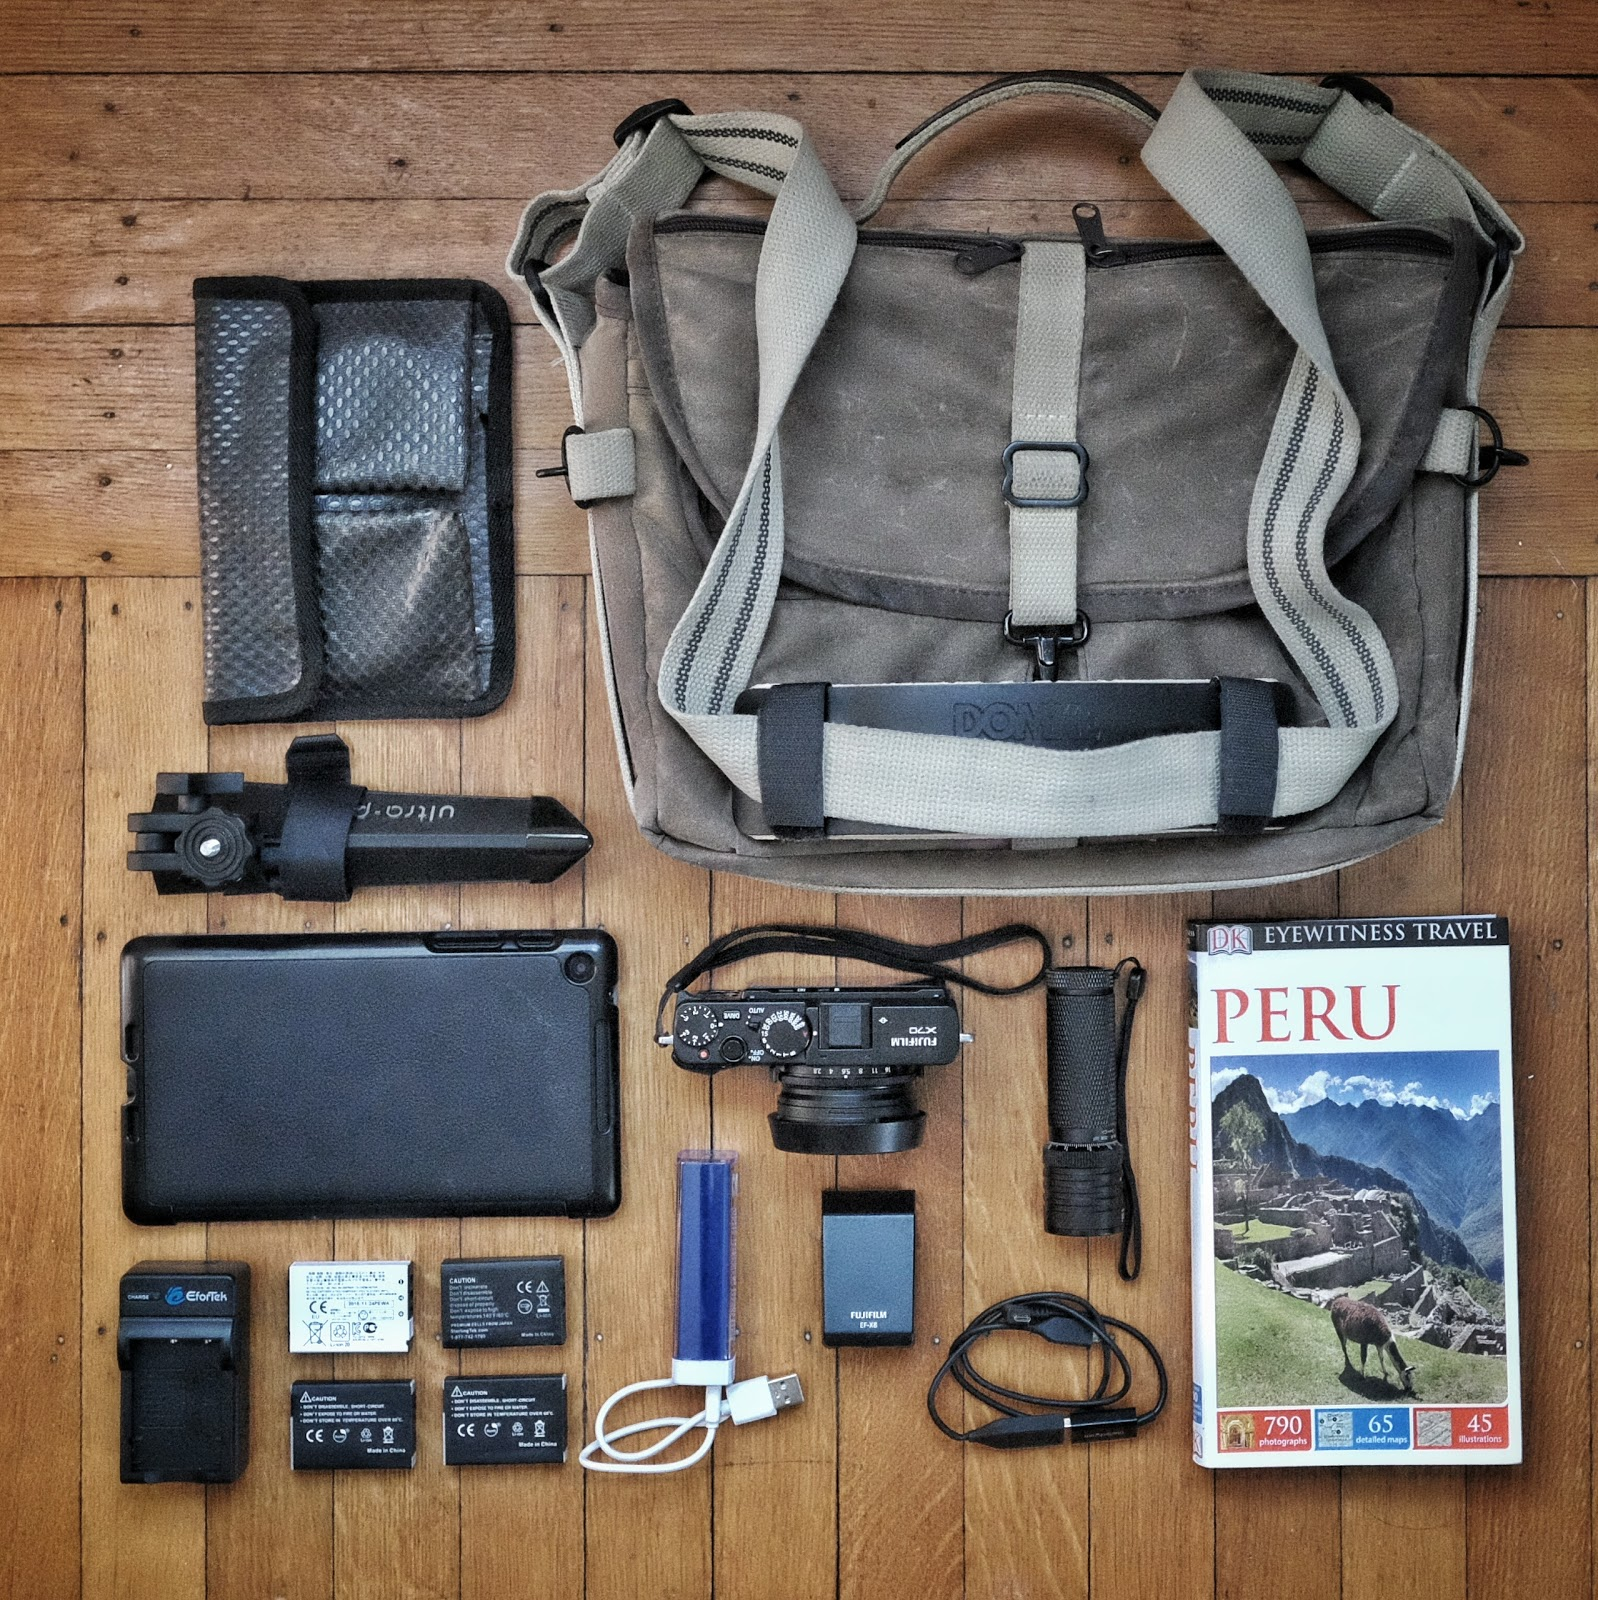 Fujifilm X70 Travel Kit